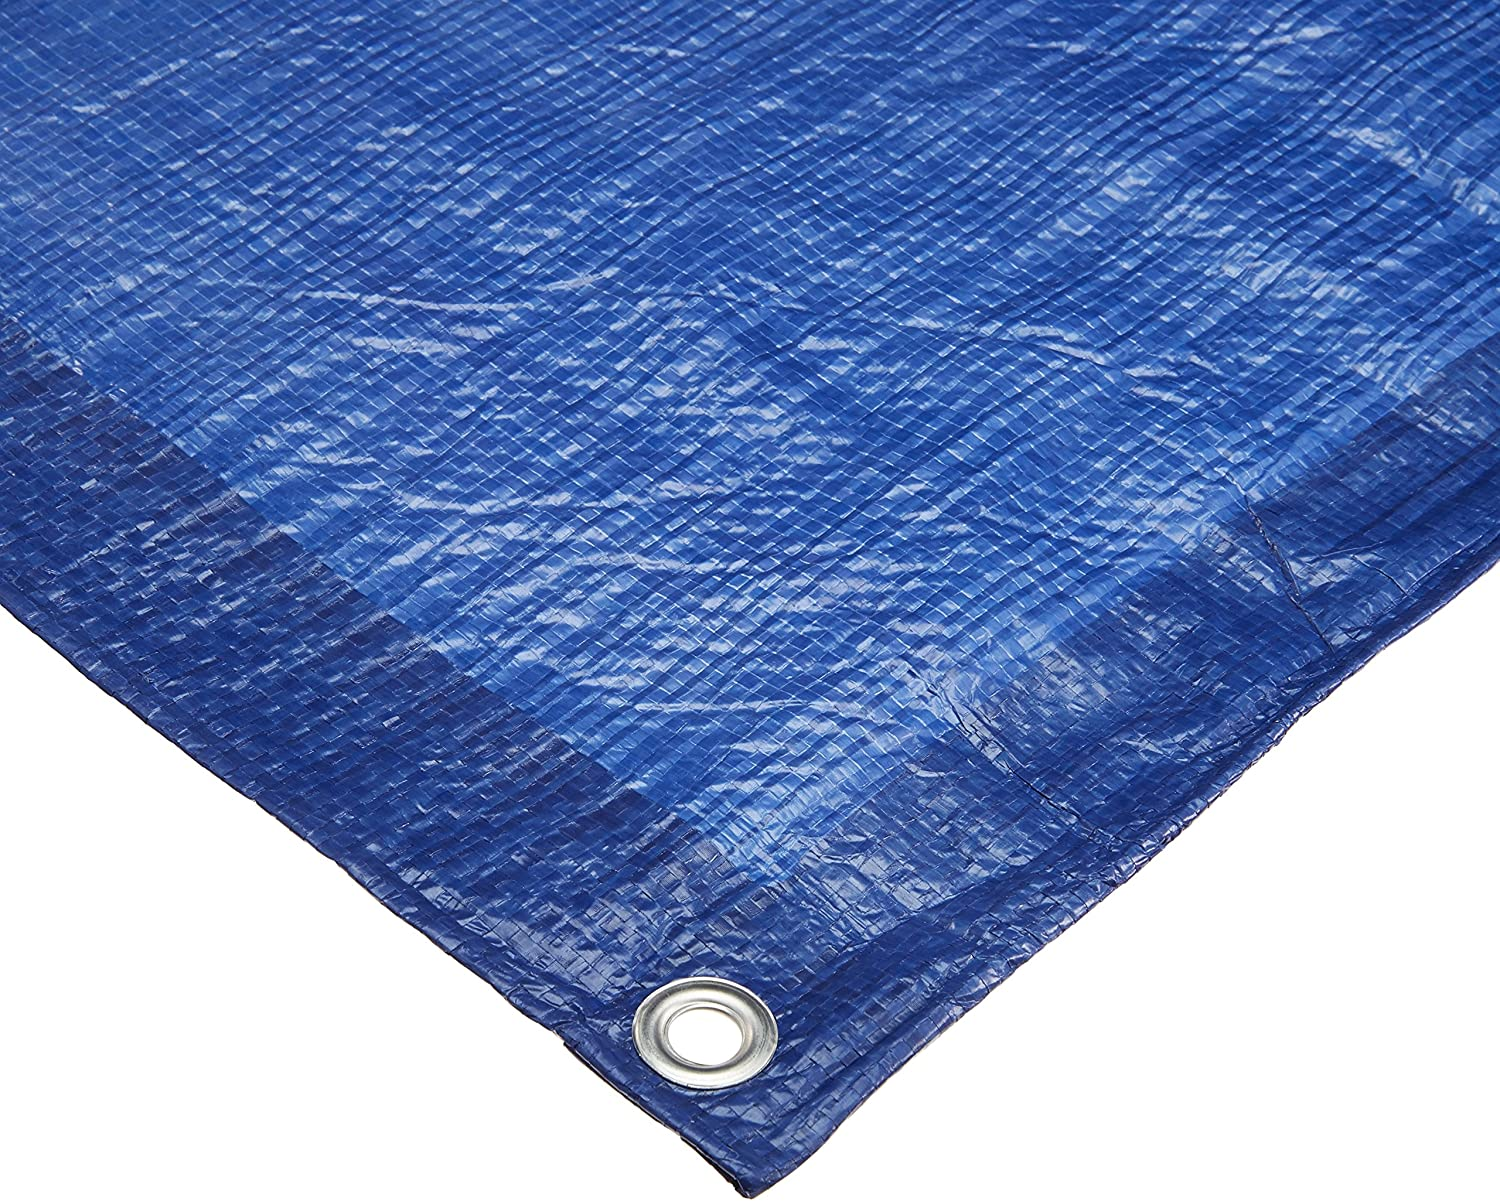 excellence Comfitwear 8'x10' Blue Poly Tarp Cover Max 77% OFF Shelter Water Tent Proof